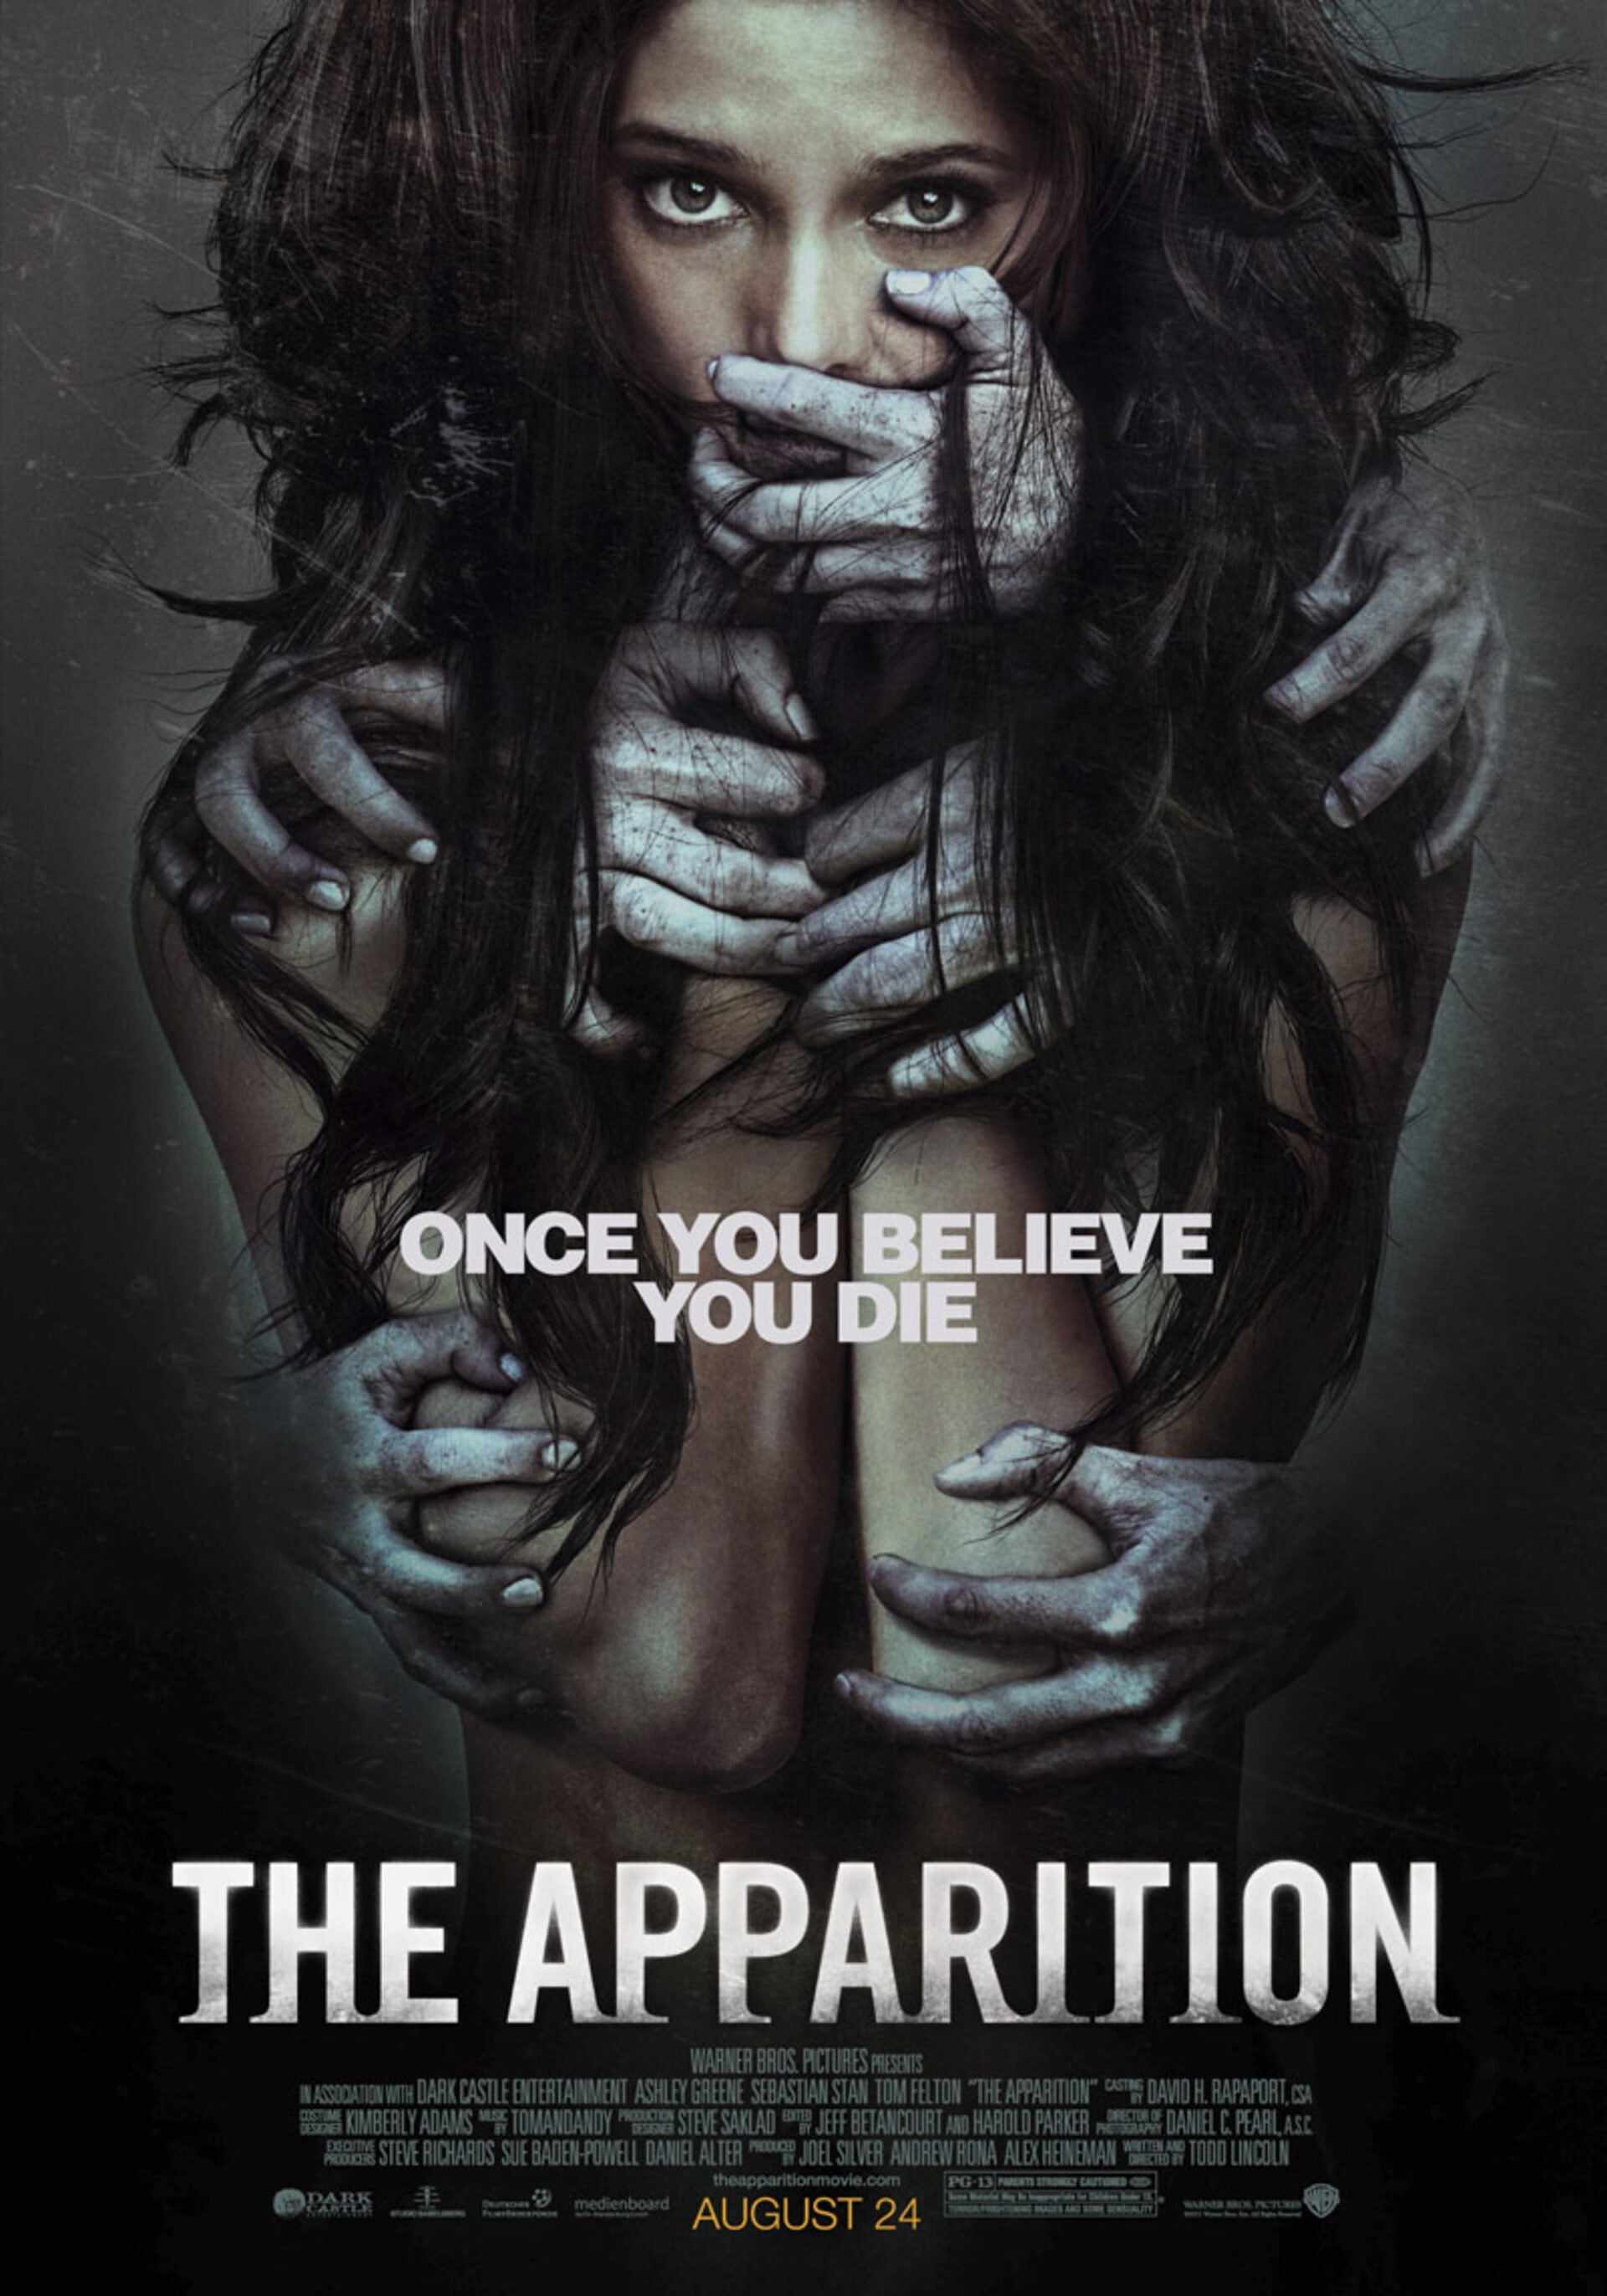 The Apparition - Poster 1